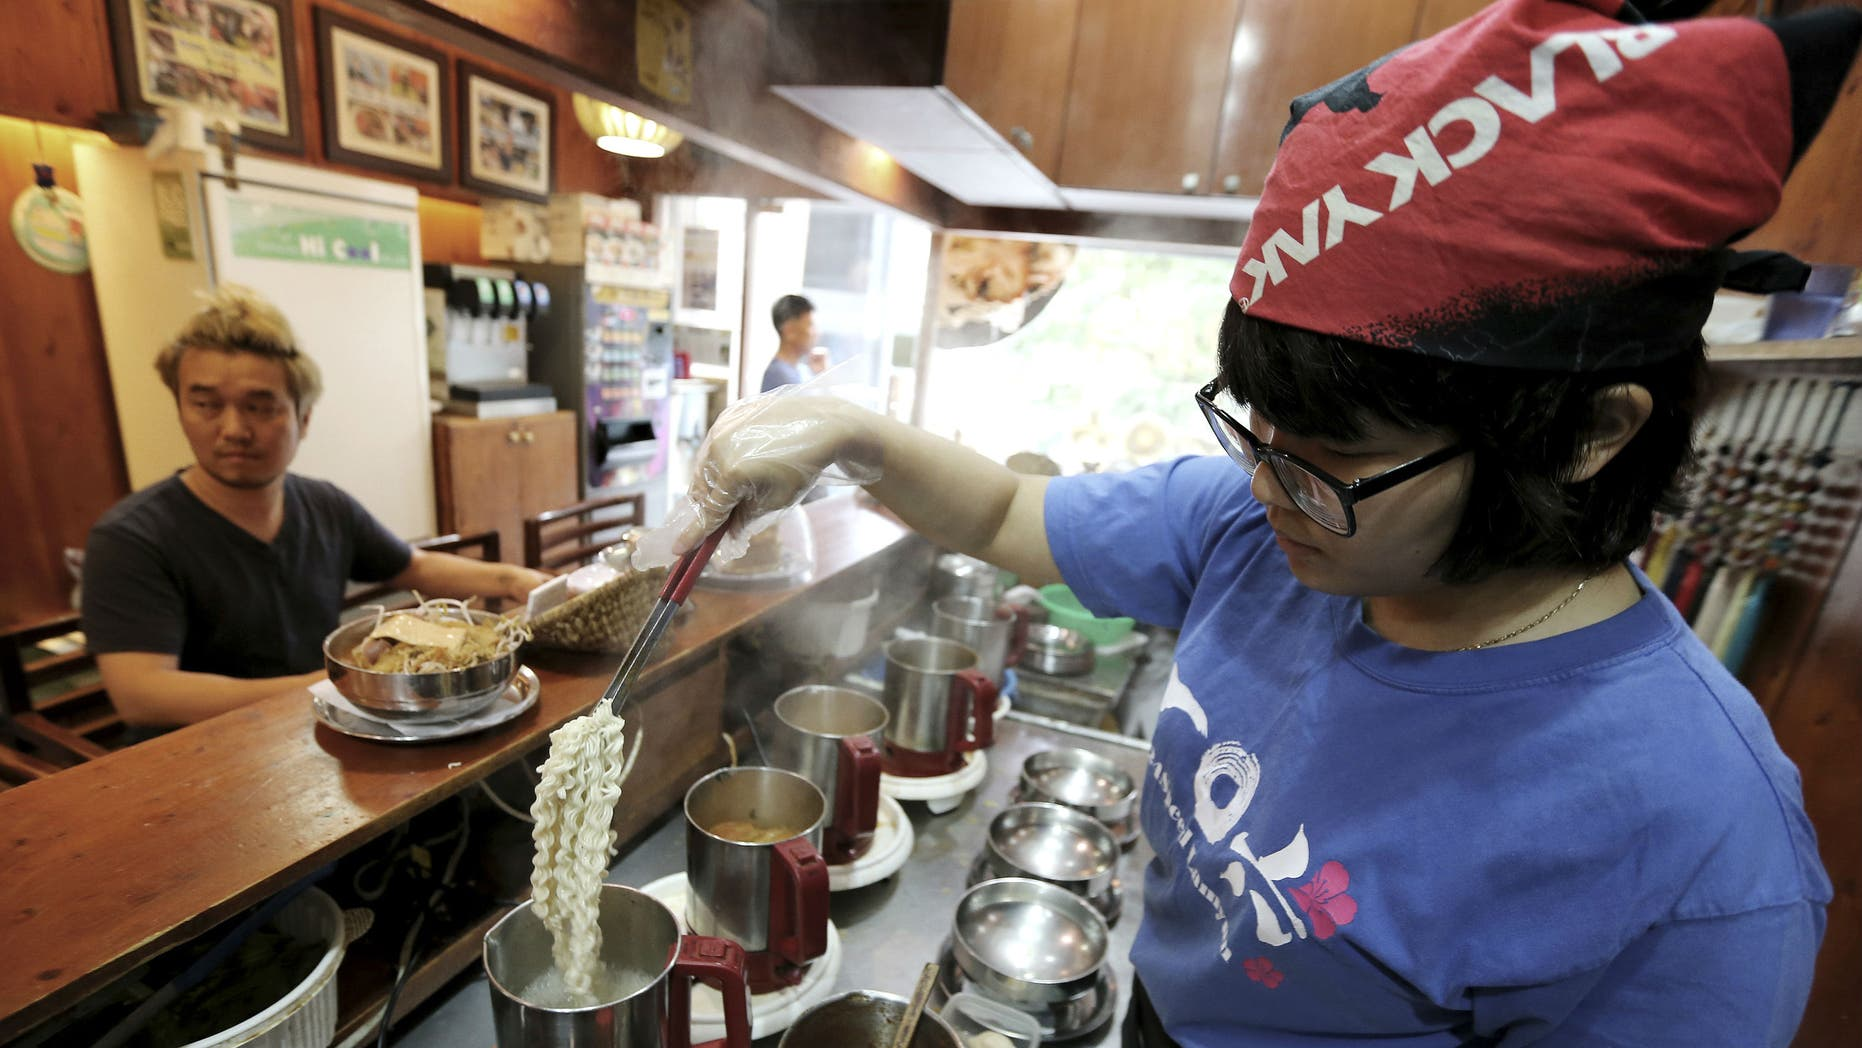 """In this Aug. 19. 2014 photo, a cook prepares """"ramyeon"""" instant noodles for Han Seung-youn, left, during an interview at a ramyeon restaurant in Seoul, South Korea. (AP Photo/Ahn Young-joon )"""